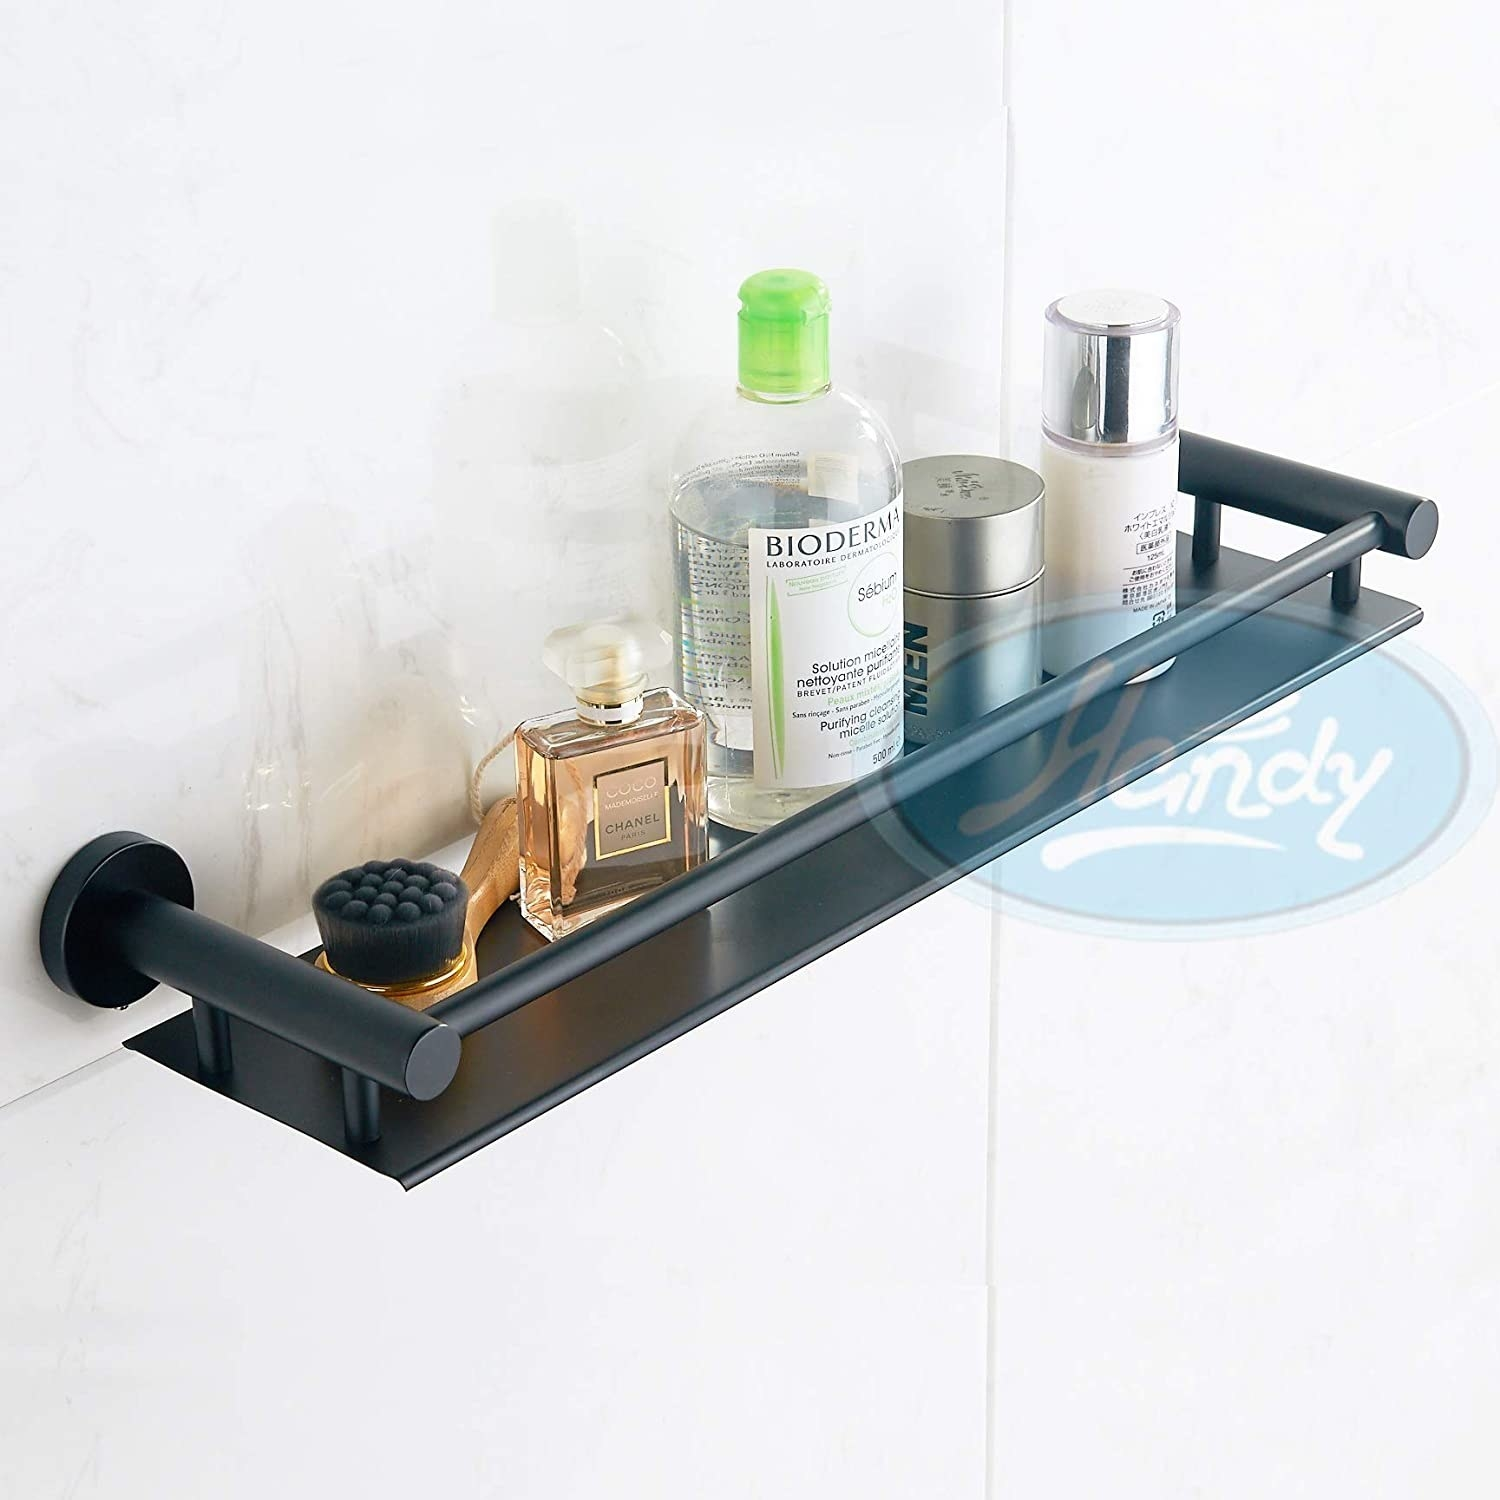 A black wall-mounted shelves with items on it